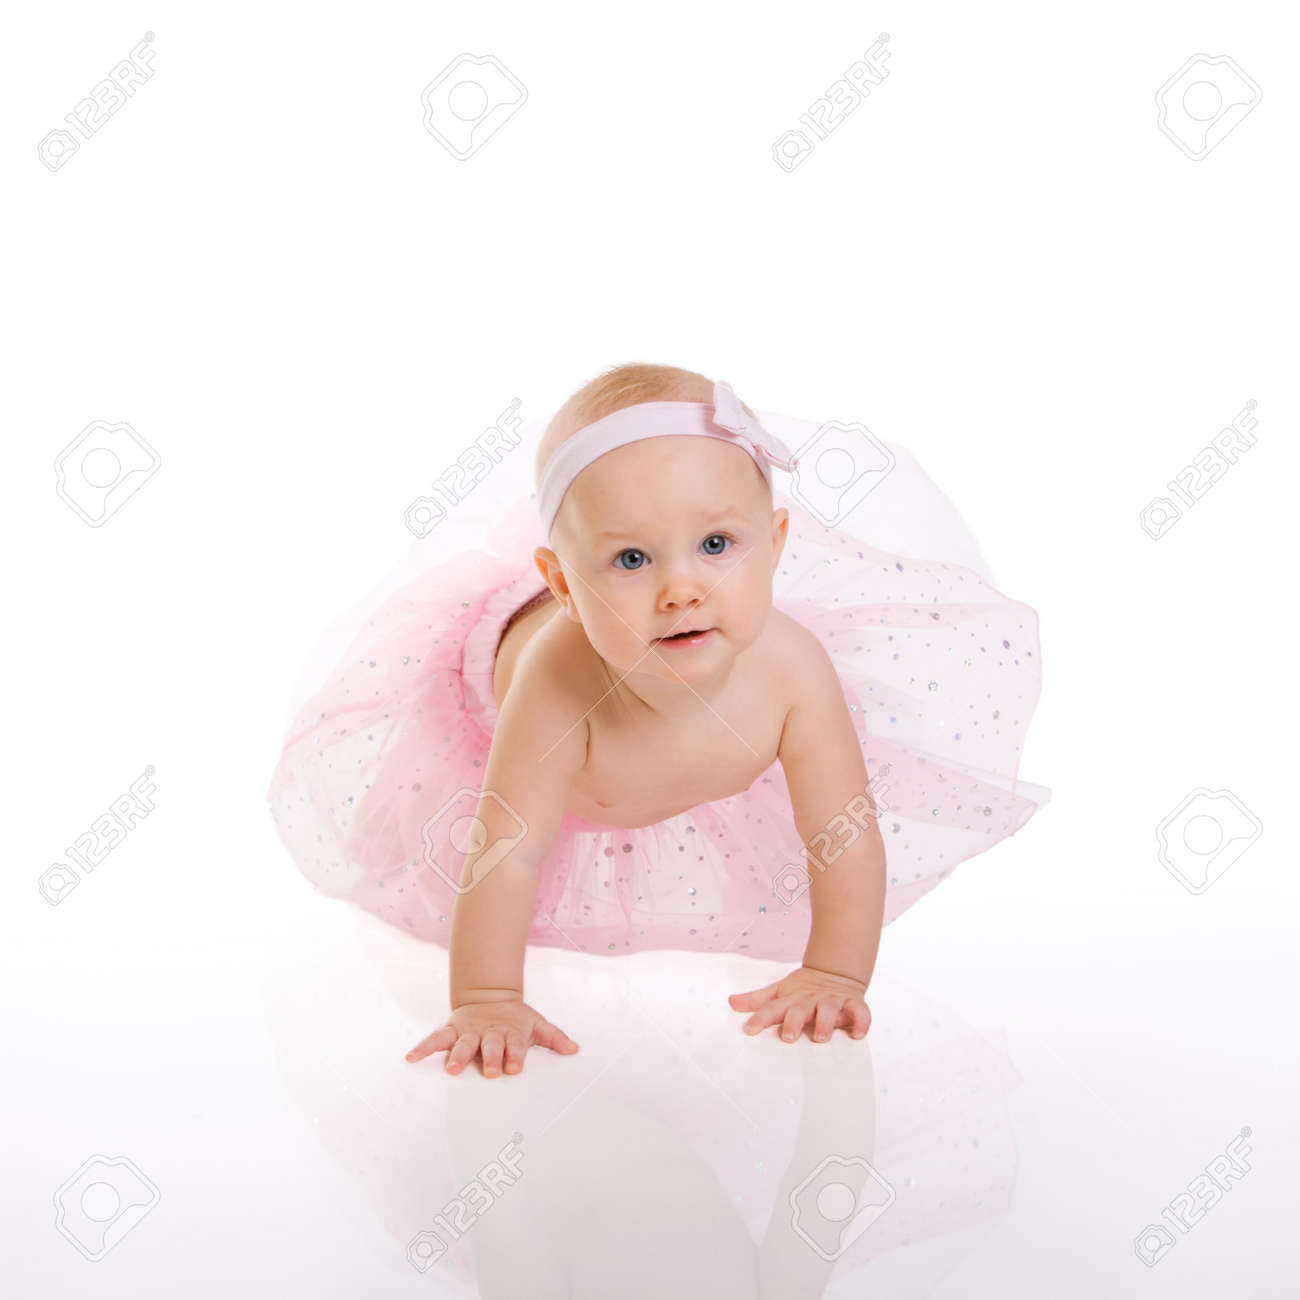 baby ballerina. very cute happy baby girl wearing ballerina skirt